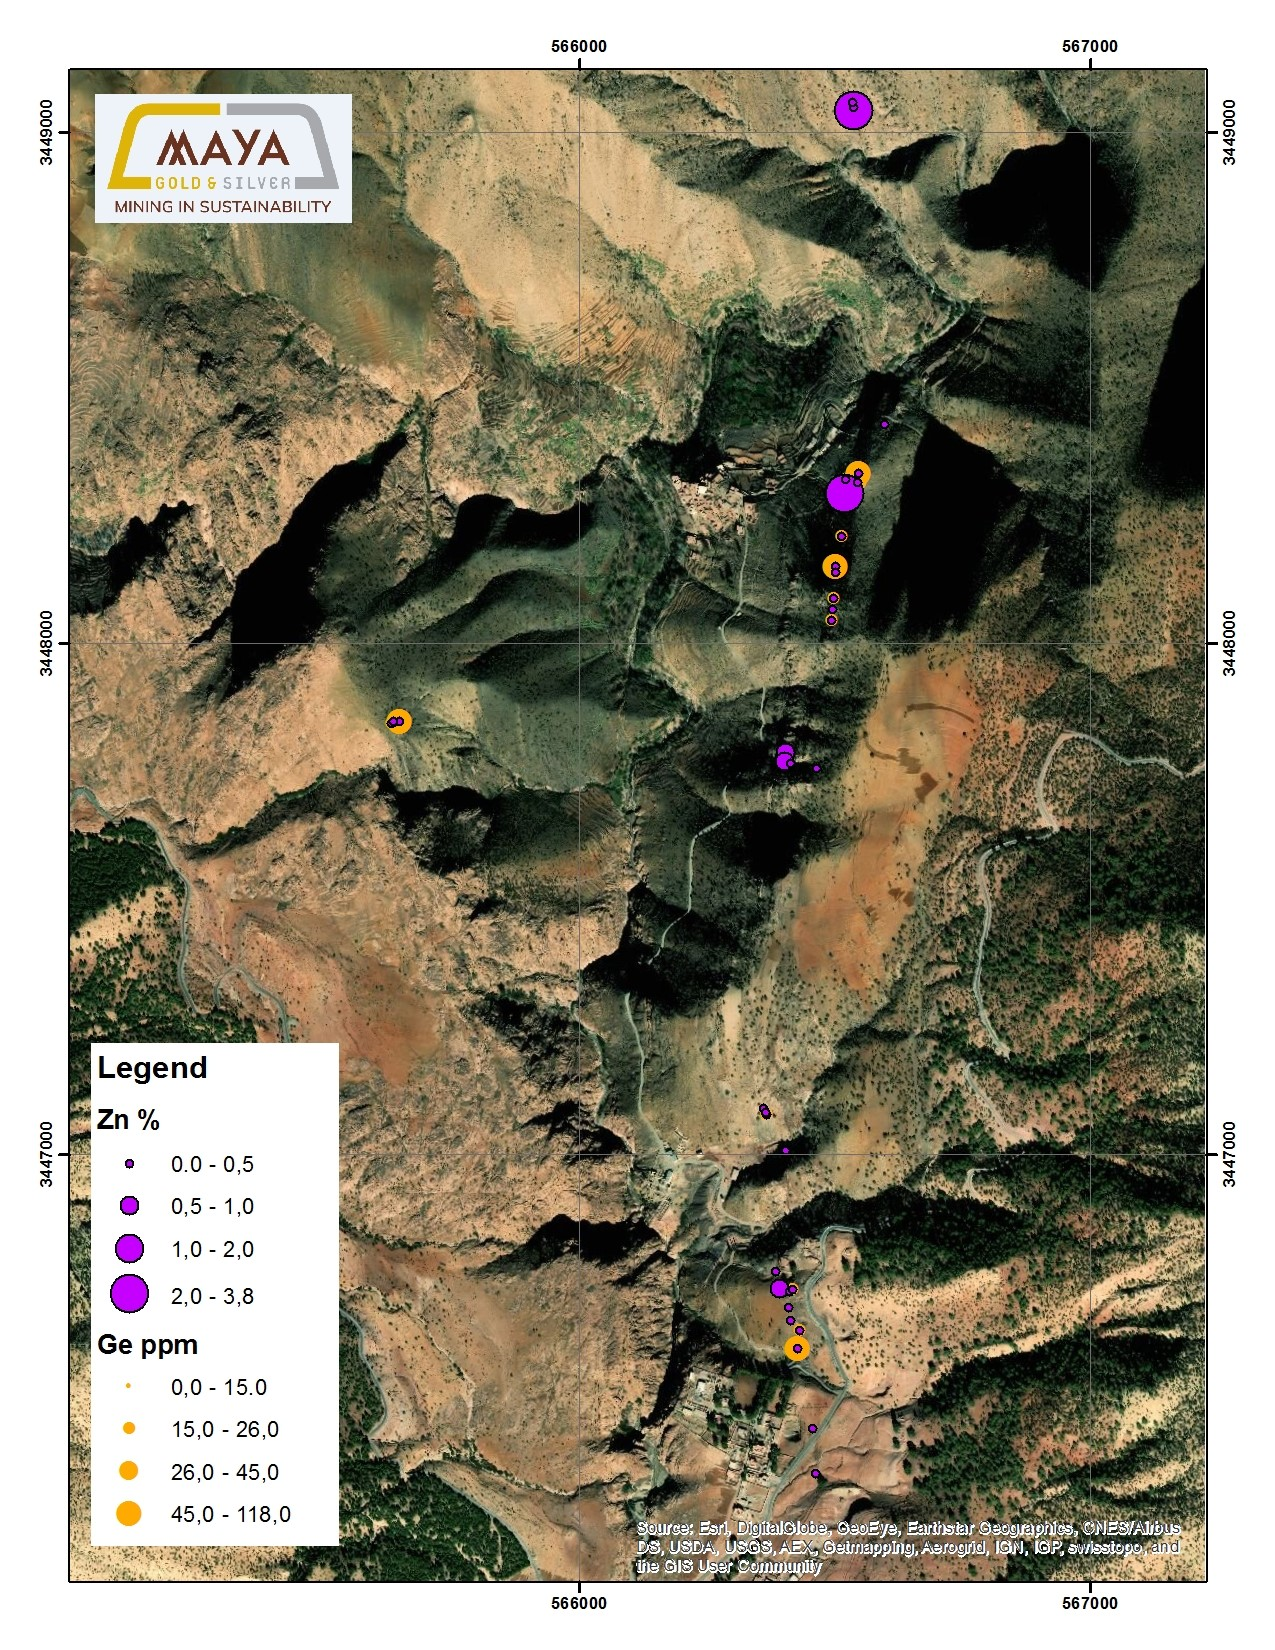 The distribution of samples showing Zn (%) and Ge (ppm), Azegour property.